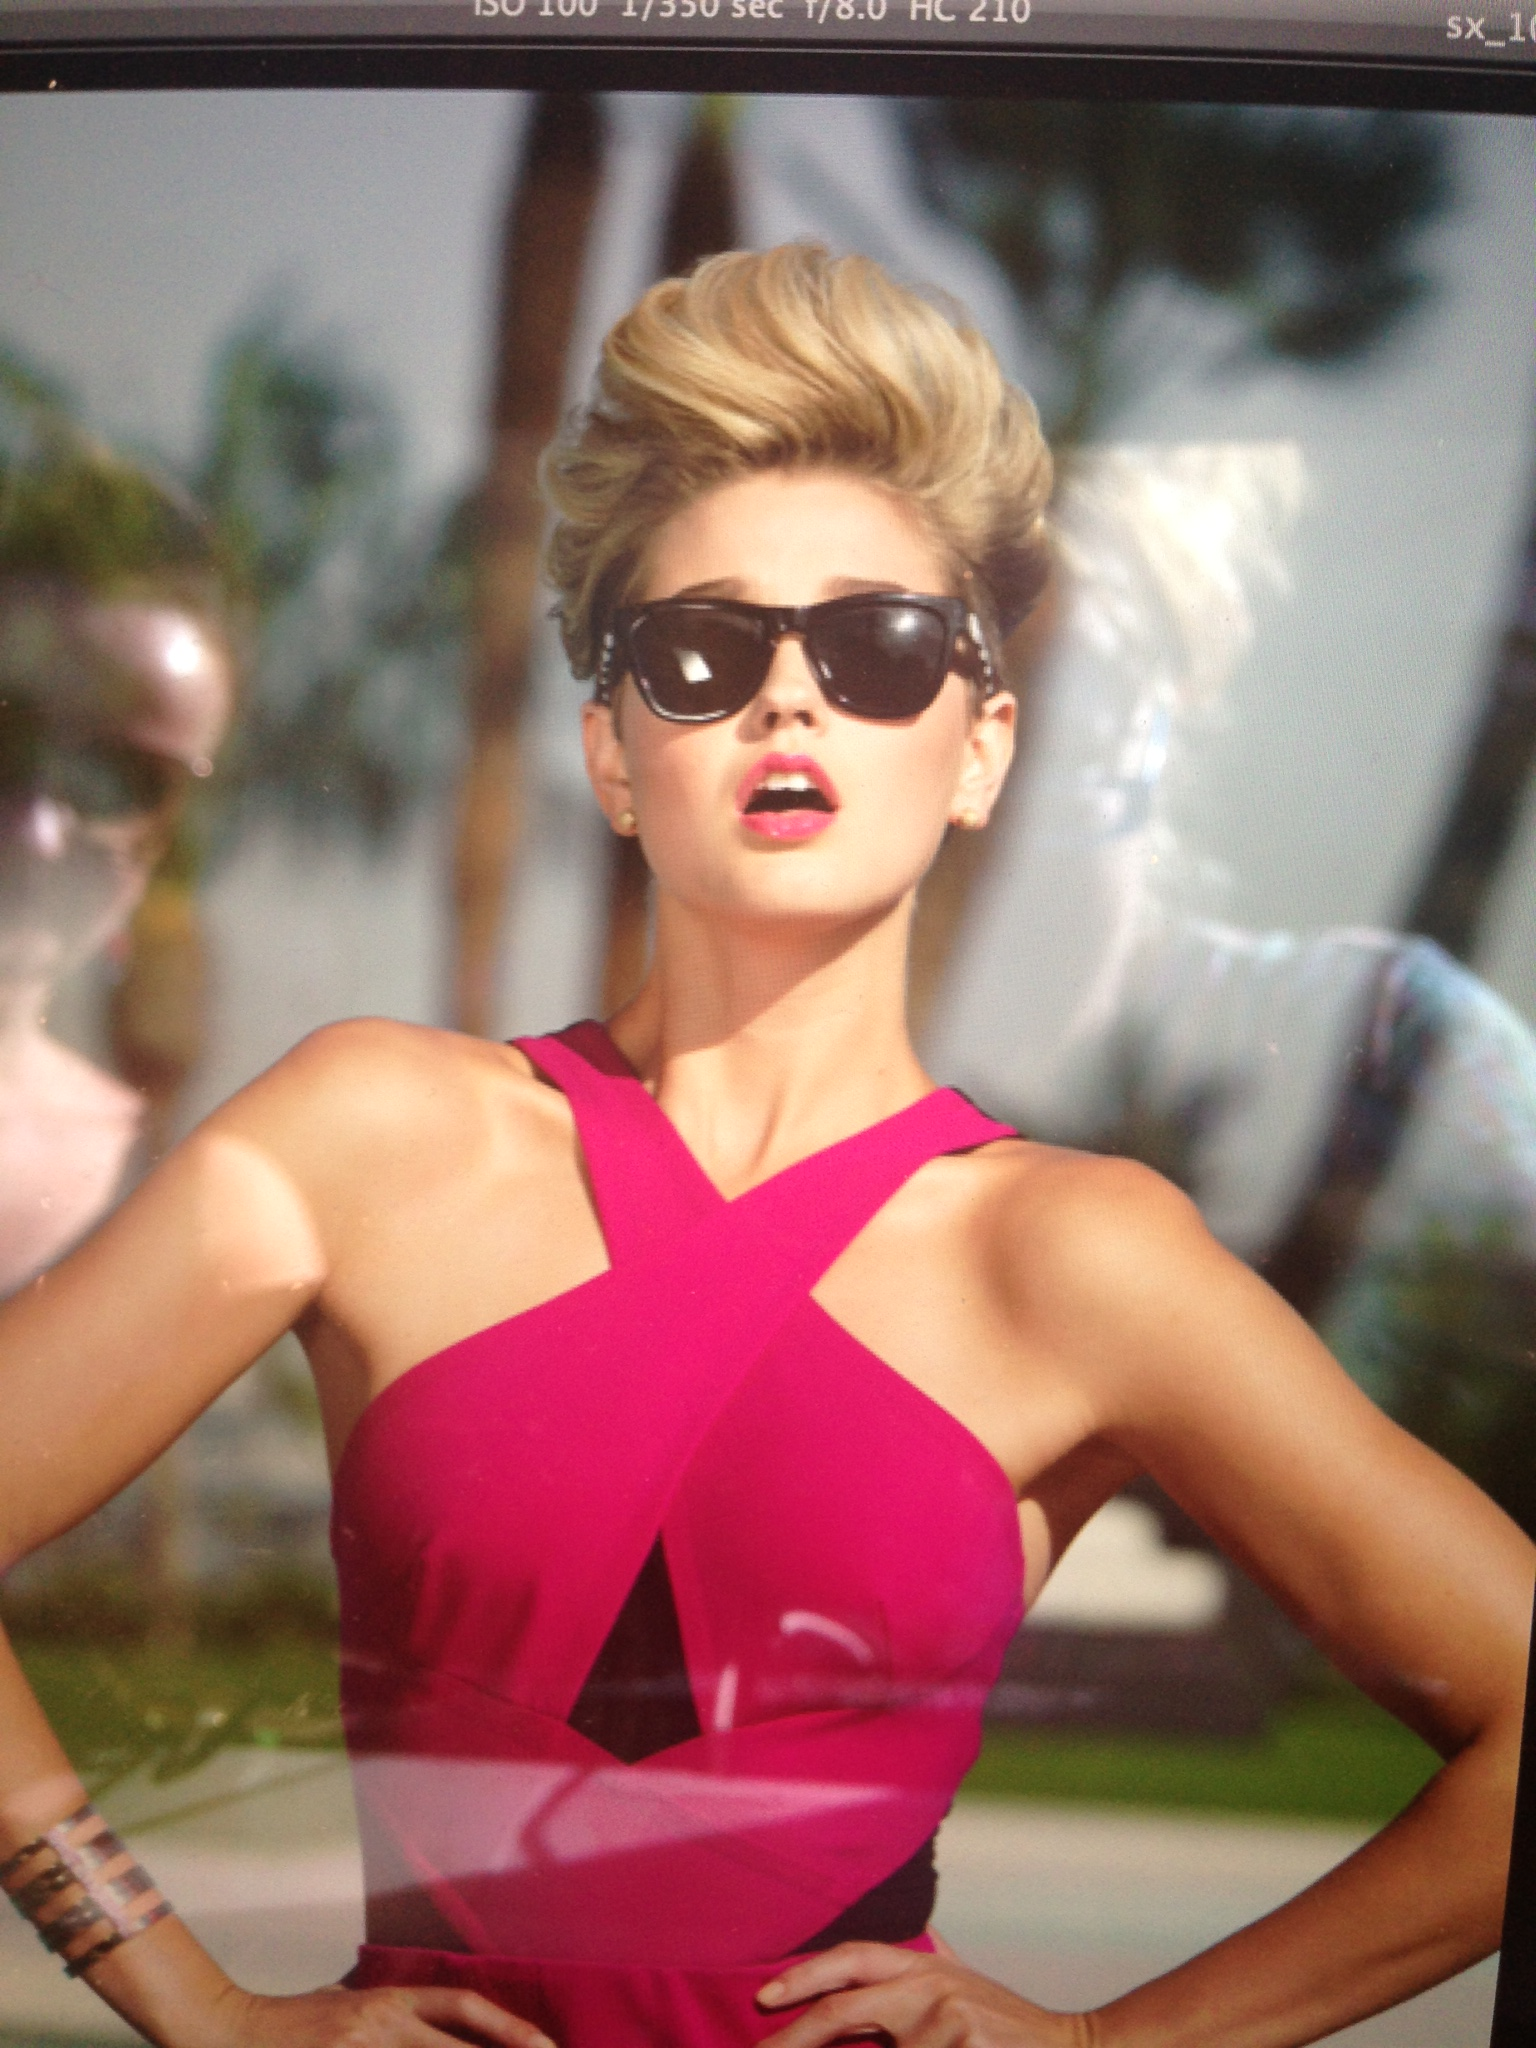 SNEAK PEEK: Sexy Hair's New Modern Hollywood Collection